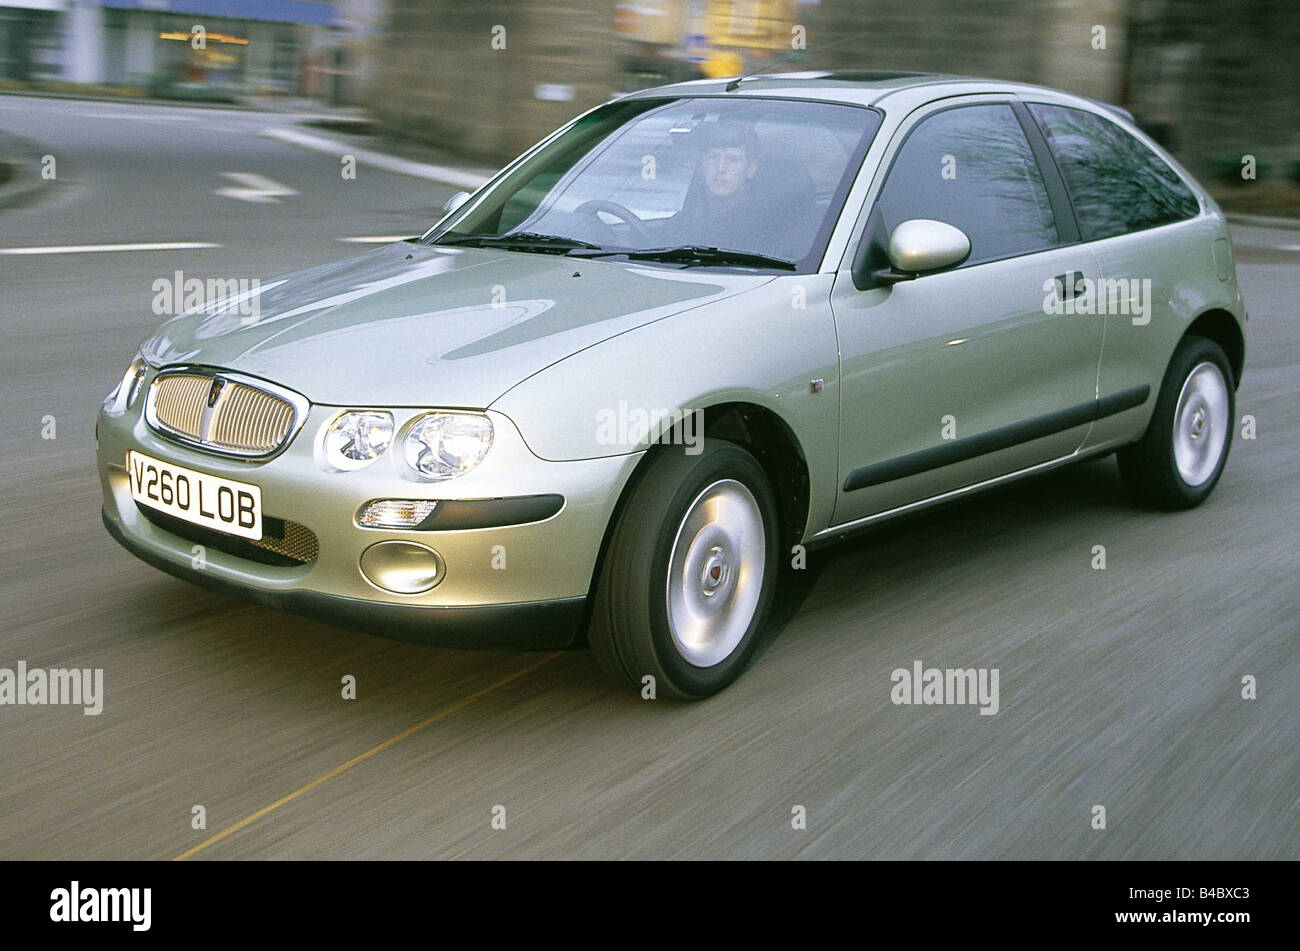 Car, Rover 25, model year 2000-, small approx., Limousine, diagonal from the front, green-metallic, driving, 100 - Stock Image